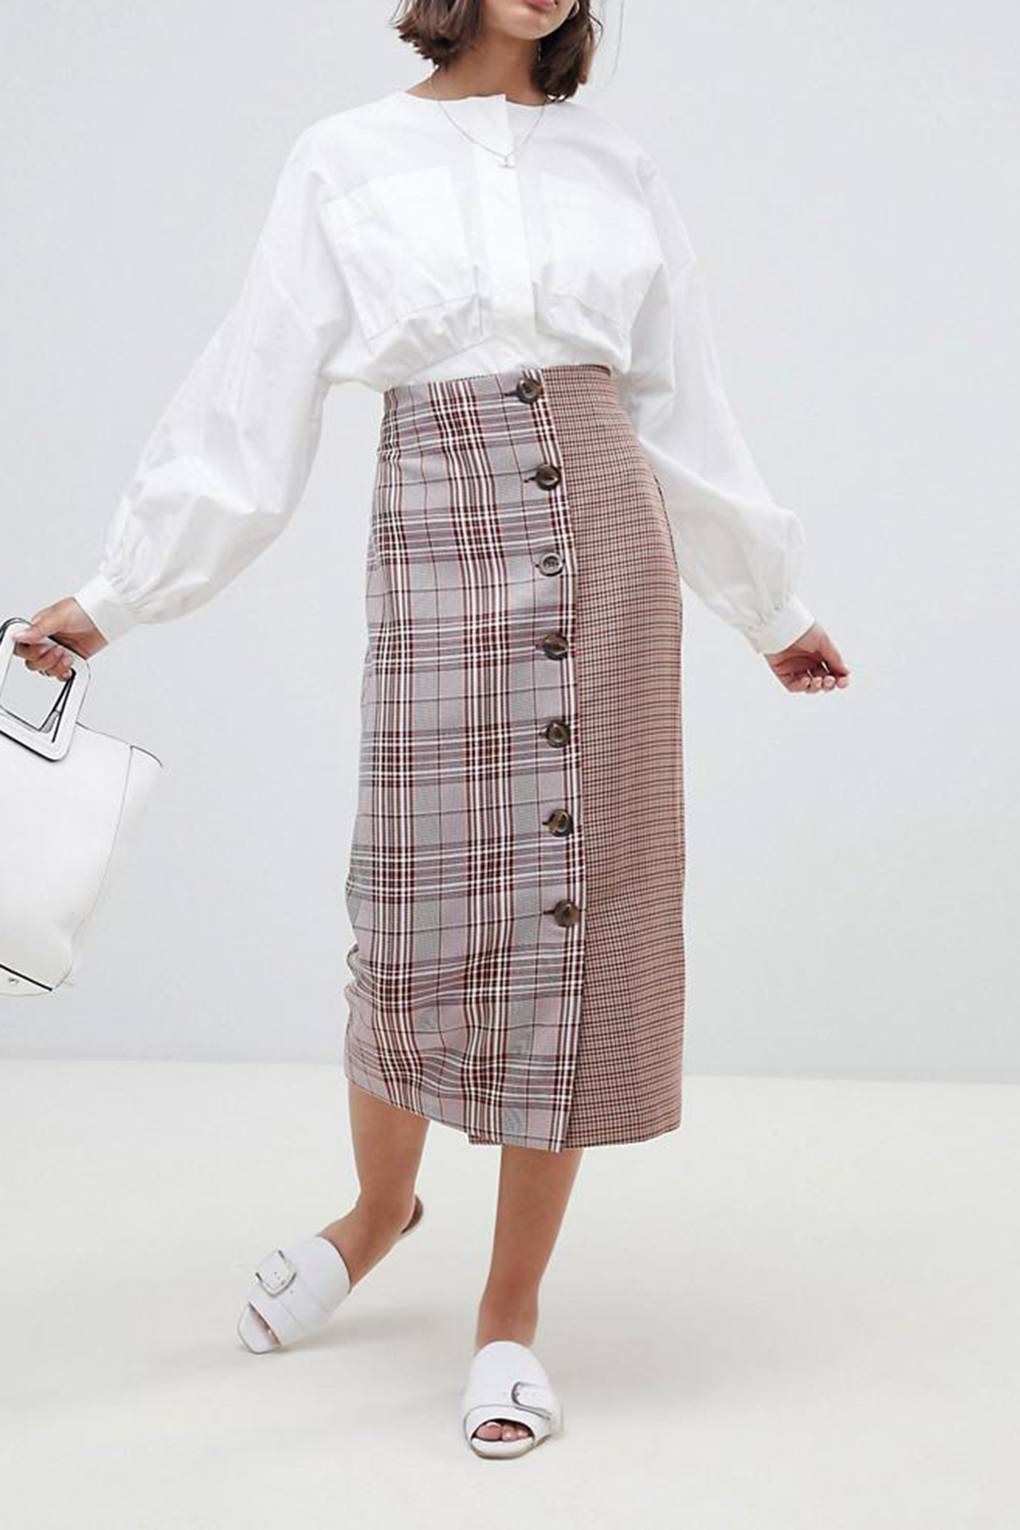 b5cad22c5d Midi Skirts: The 20 Best Mid-Length Skirts To Shop Right Now   Glamour UK